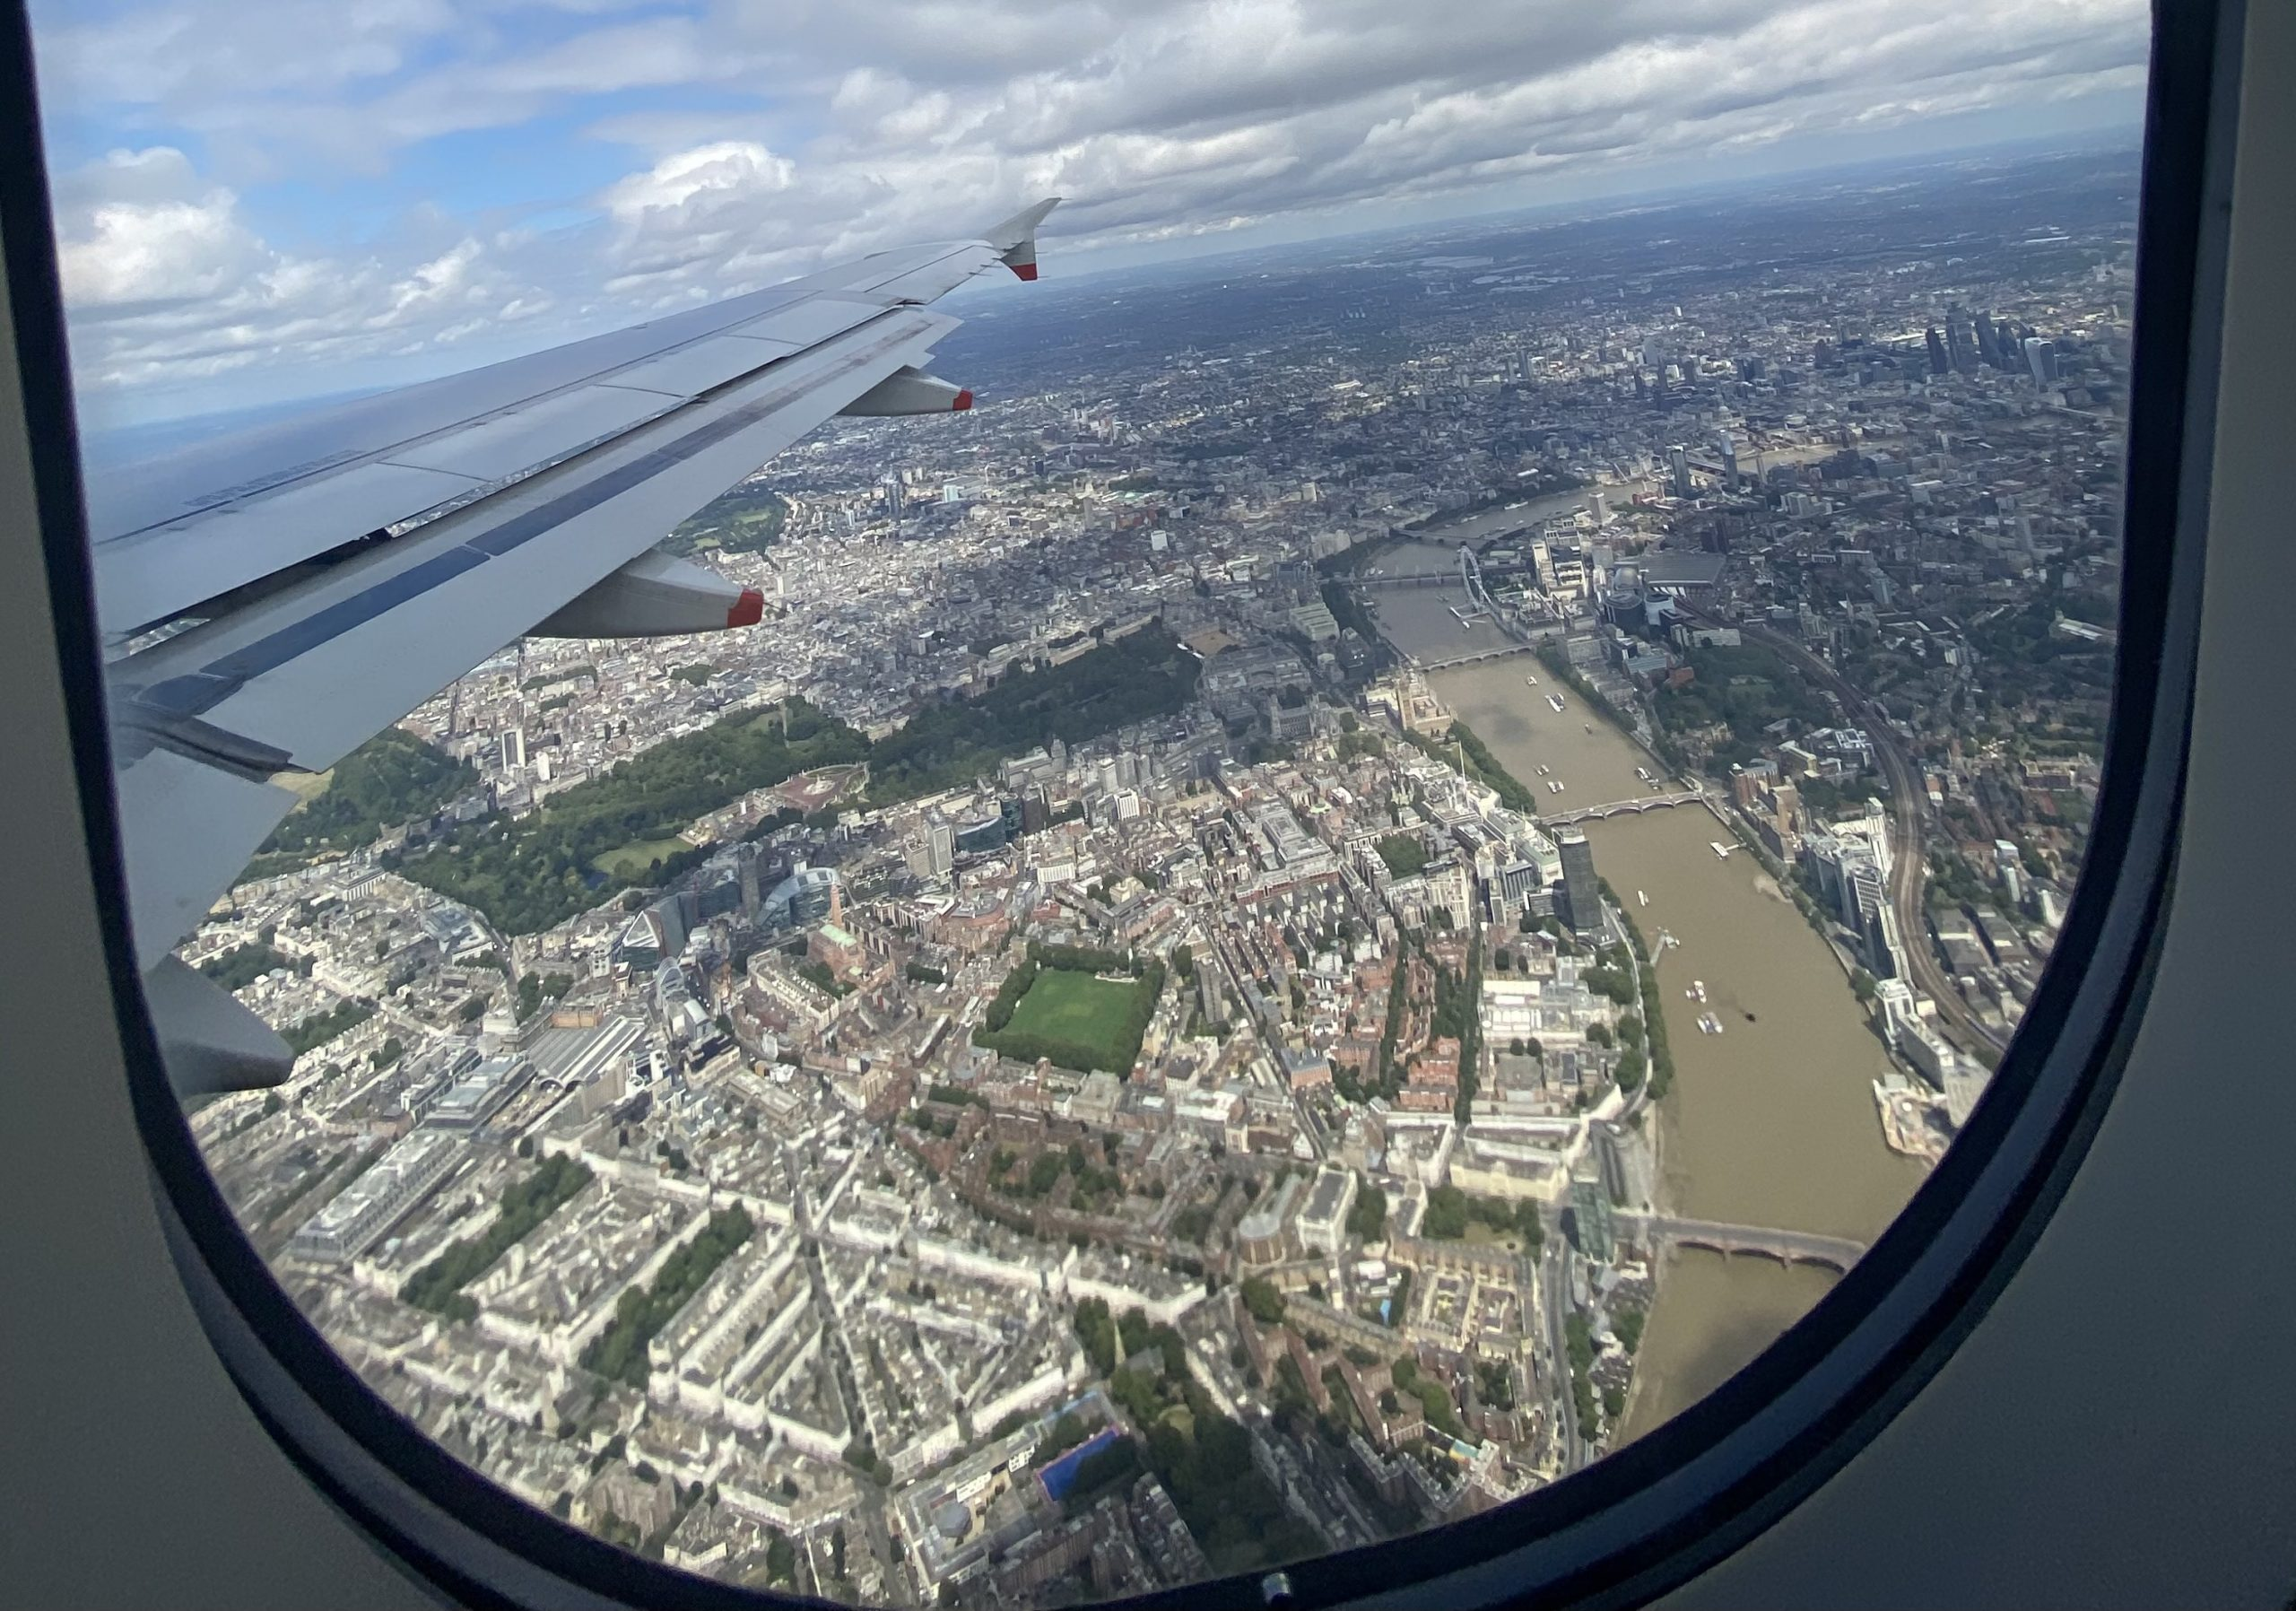 Picture of London from the airplane